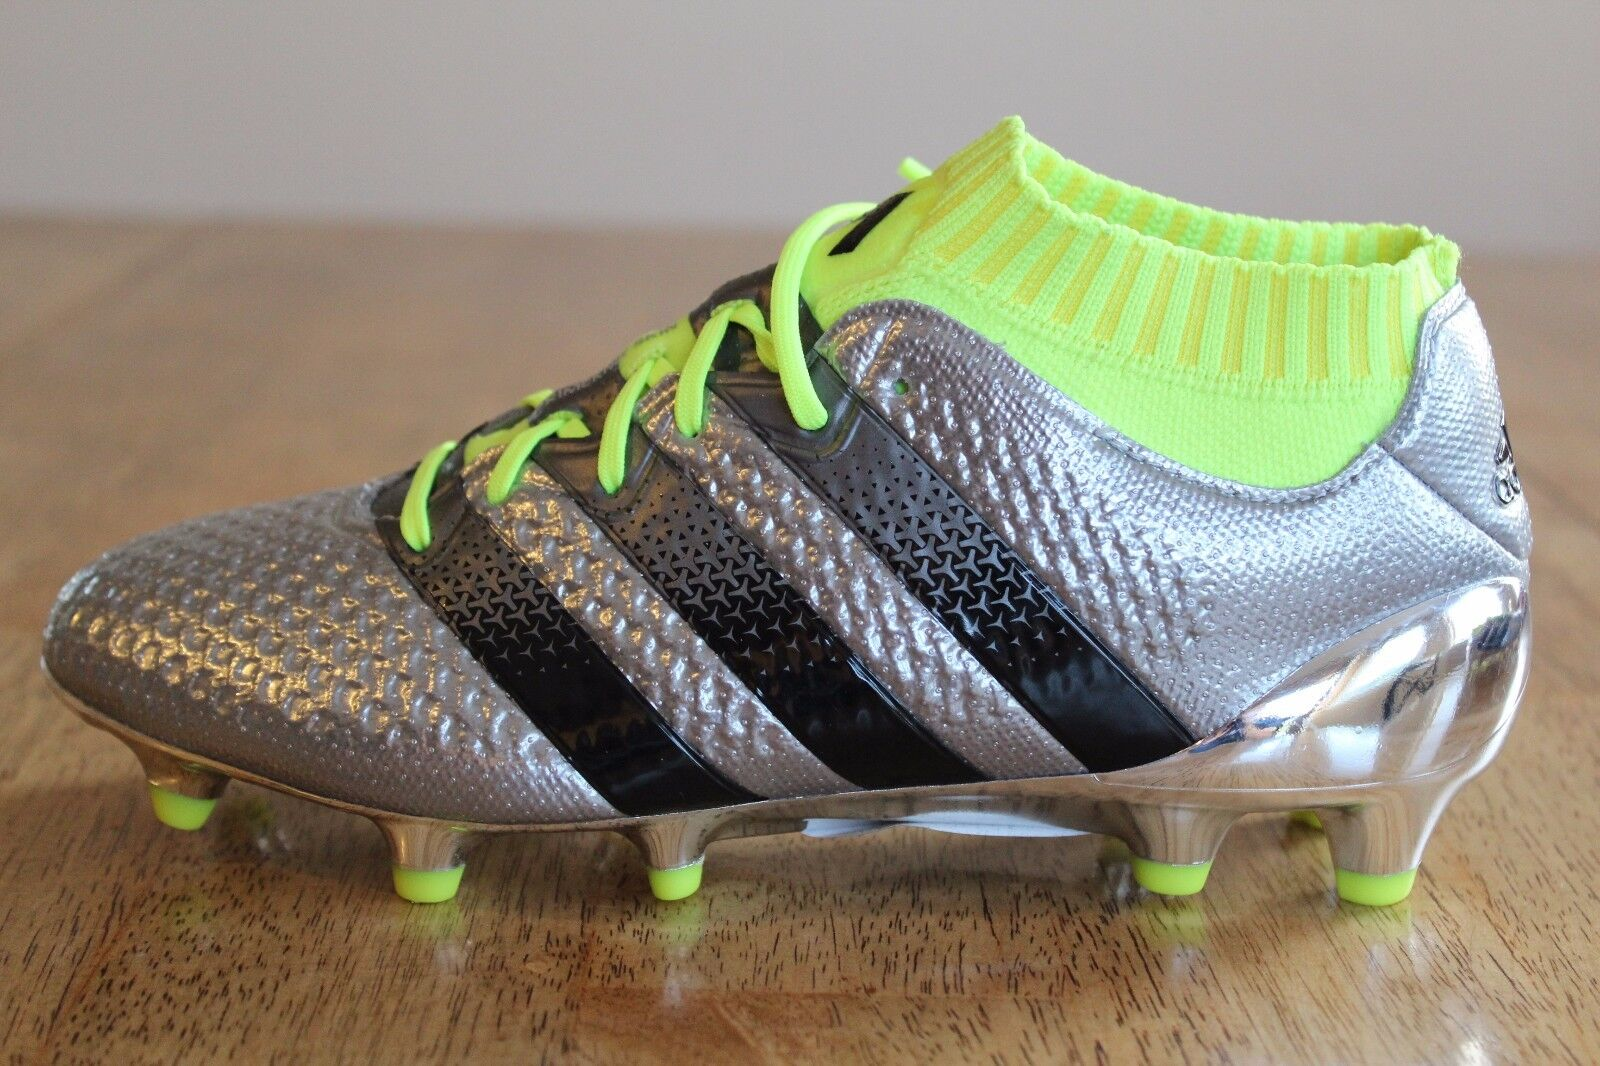 18 New Adidas Ace 16.1 Primeknit Silver FG Youth Soccer Cleats 5.5 (Wmns 7)